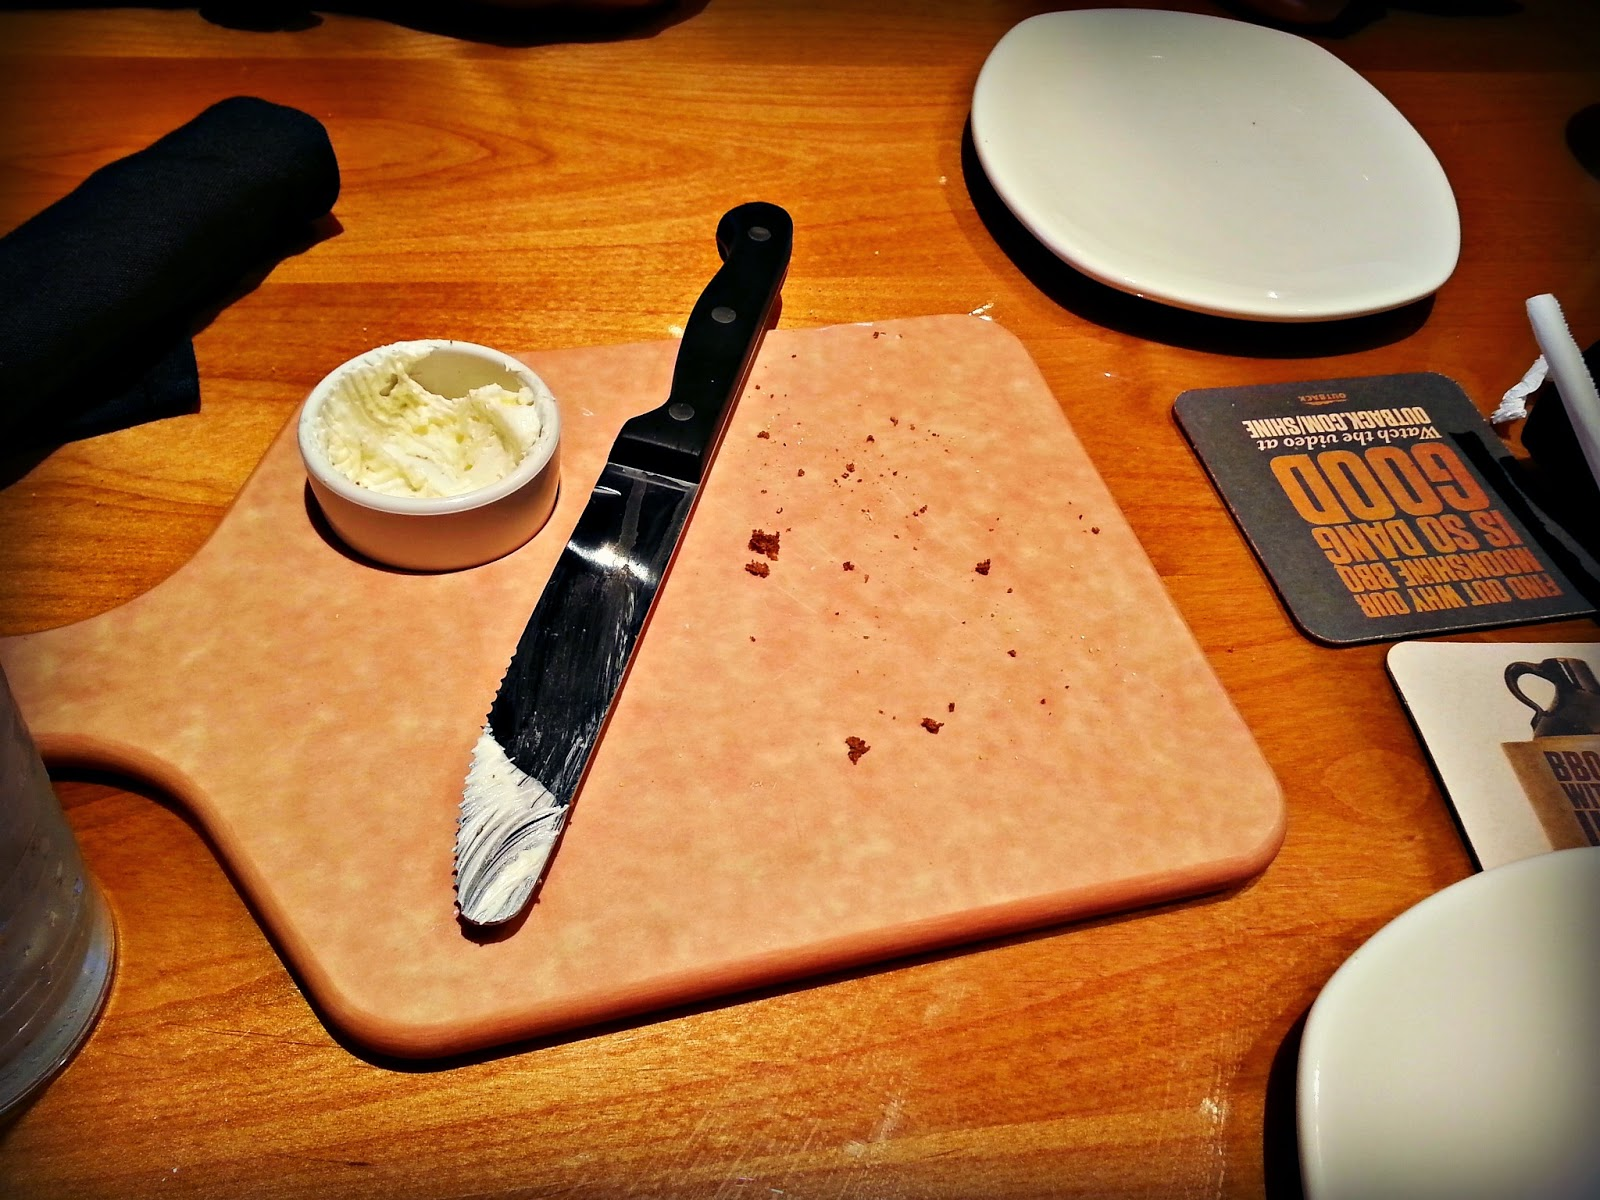 Eating Out on a Budget: Going to the Outback